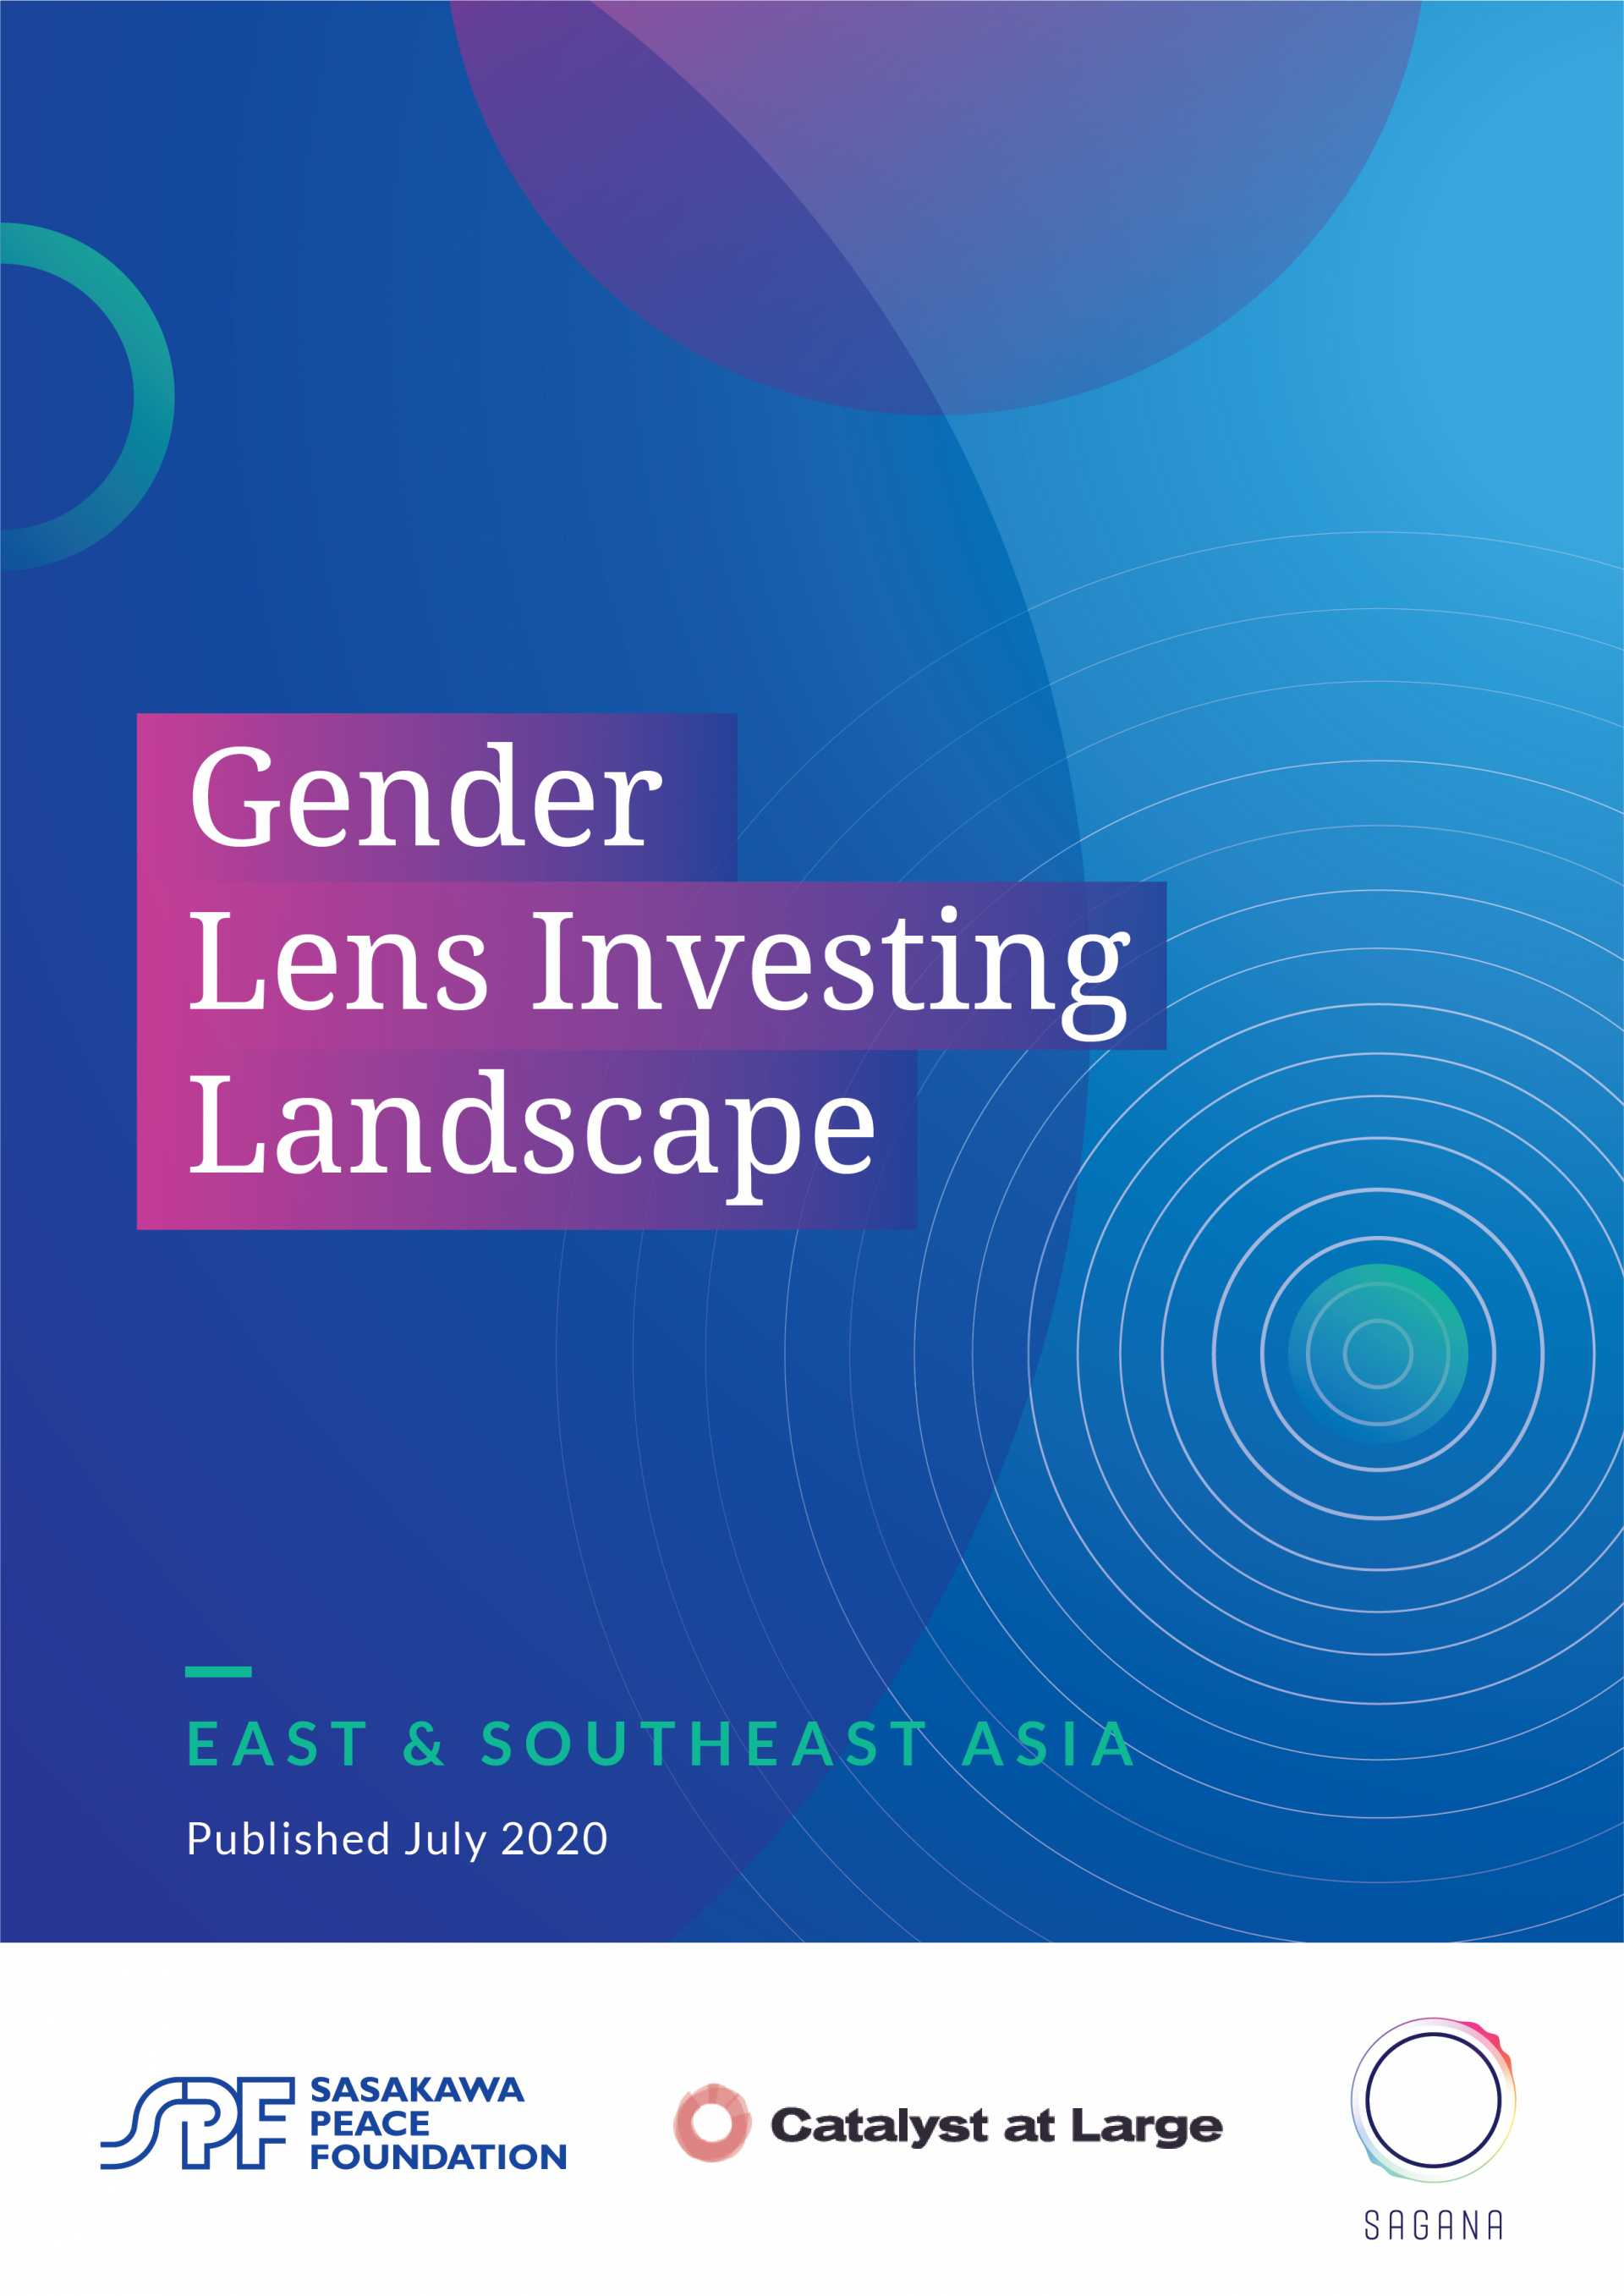 Gender Lens Investing Landscape East & Southeast Asia